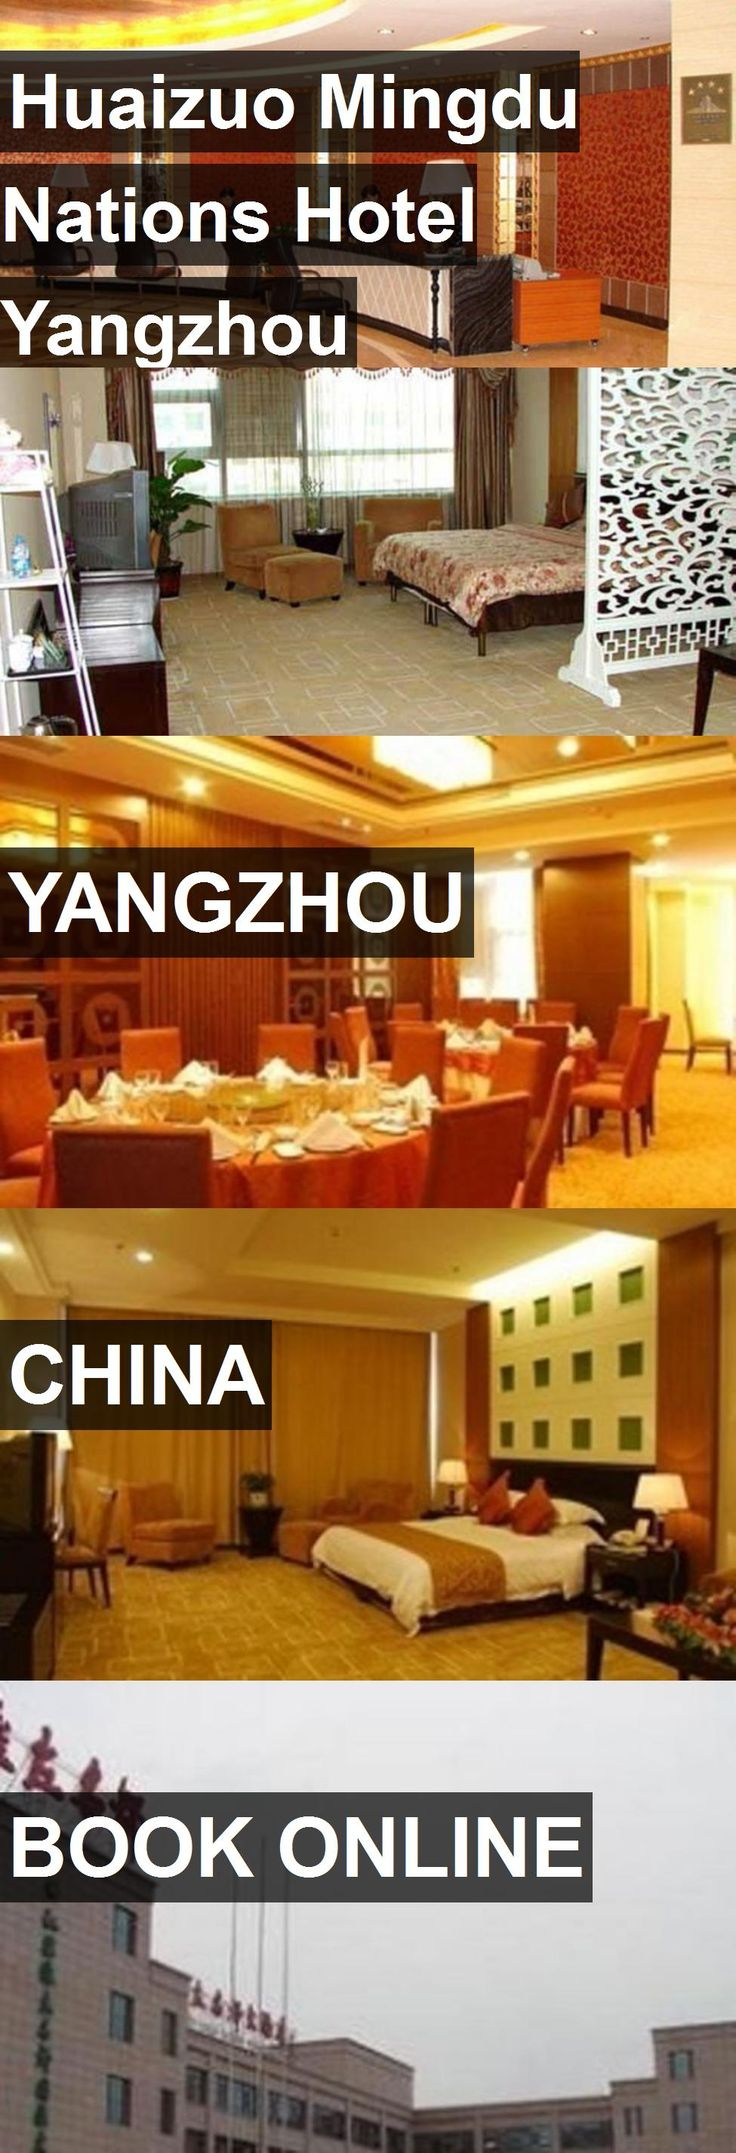 Huaizuo Mingdu Nations Hotel Yangzhou in Yangzhou, China. For more information, photos, reviews and best prices please follow the link. #China #Yangzhou #travel #vacation #hotel